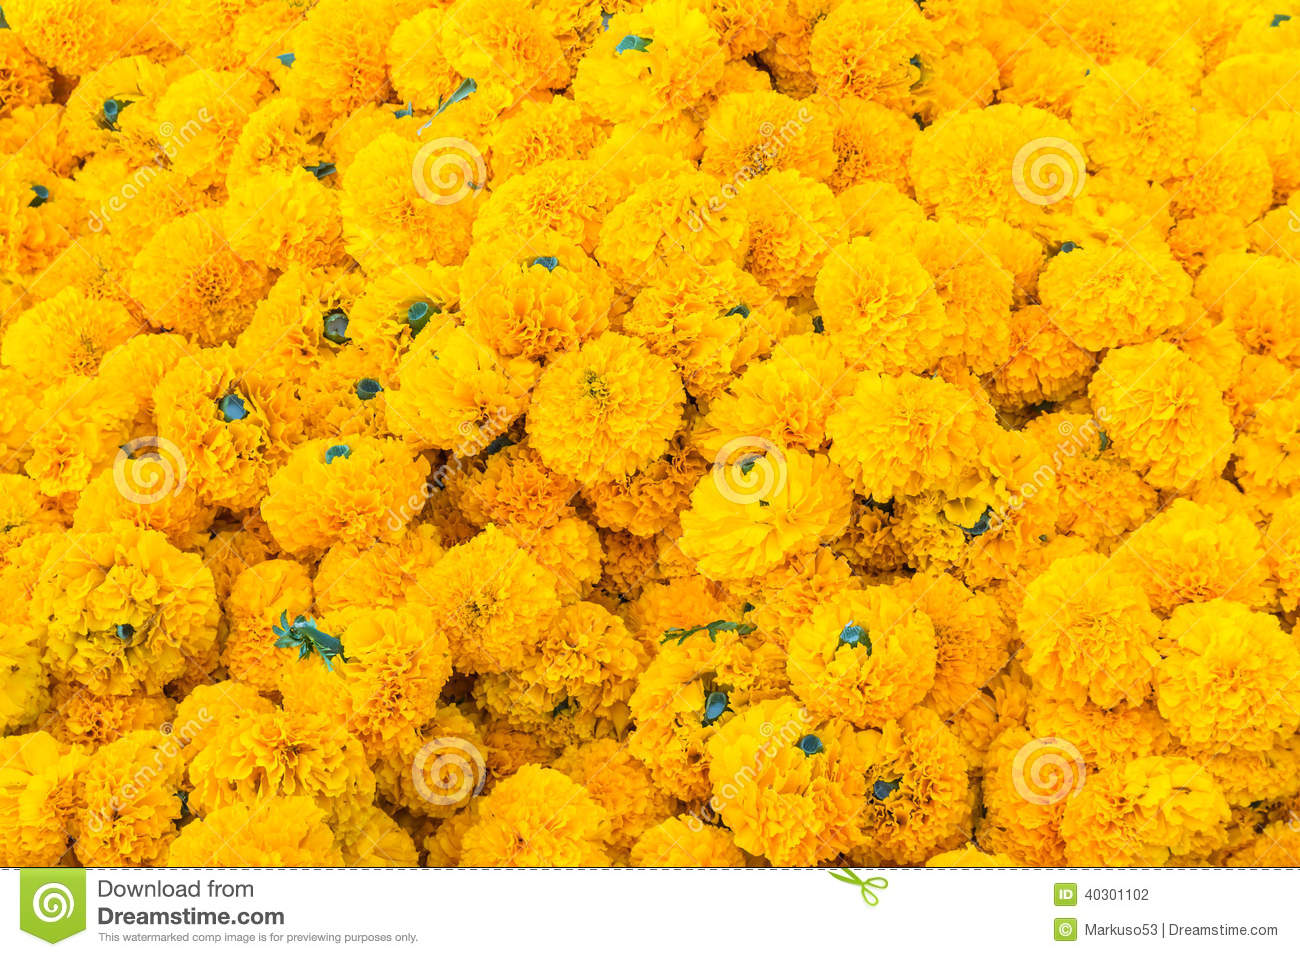 006588250e6 Heap of Marigold flowers stock photo. Image of botanical - 40301102